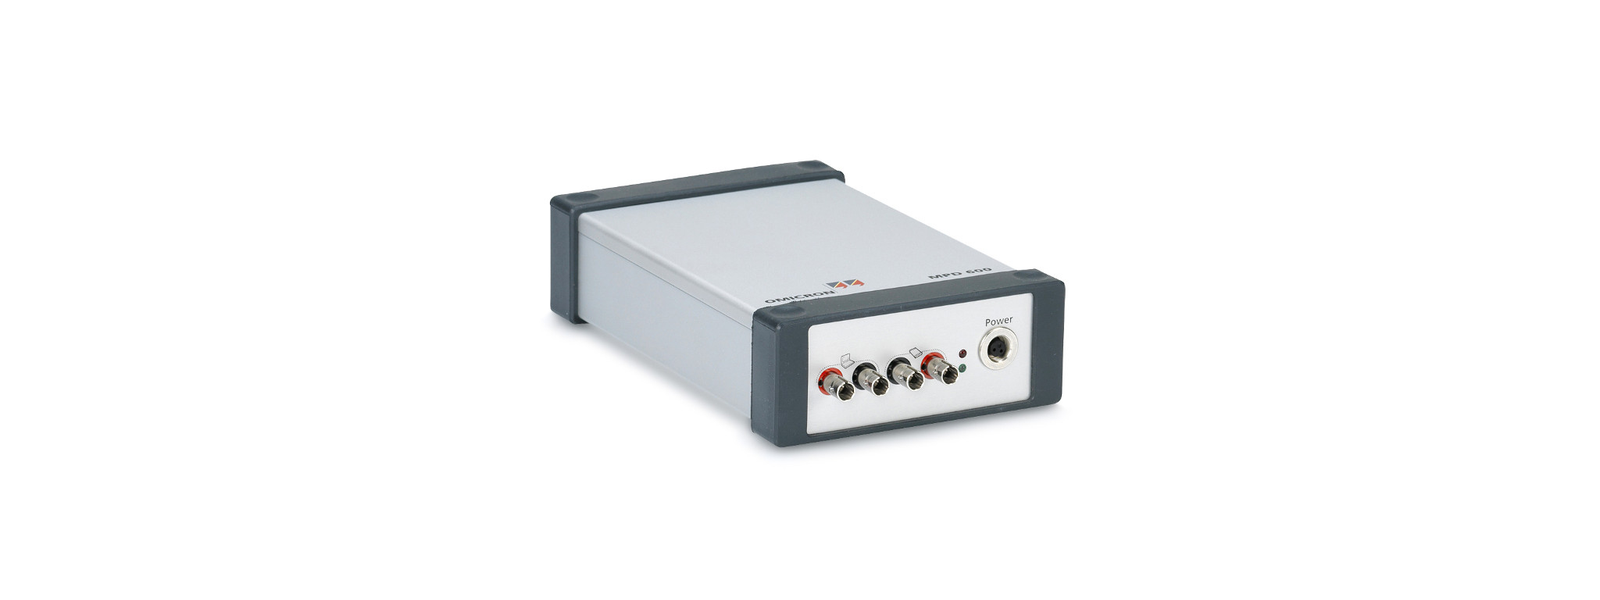 Omicron MPD 600 for the measurement of Partial Discharge.